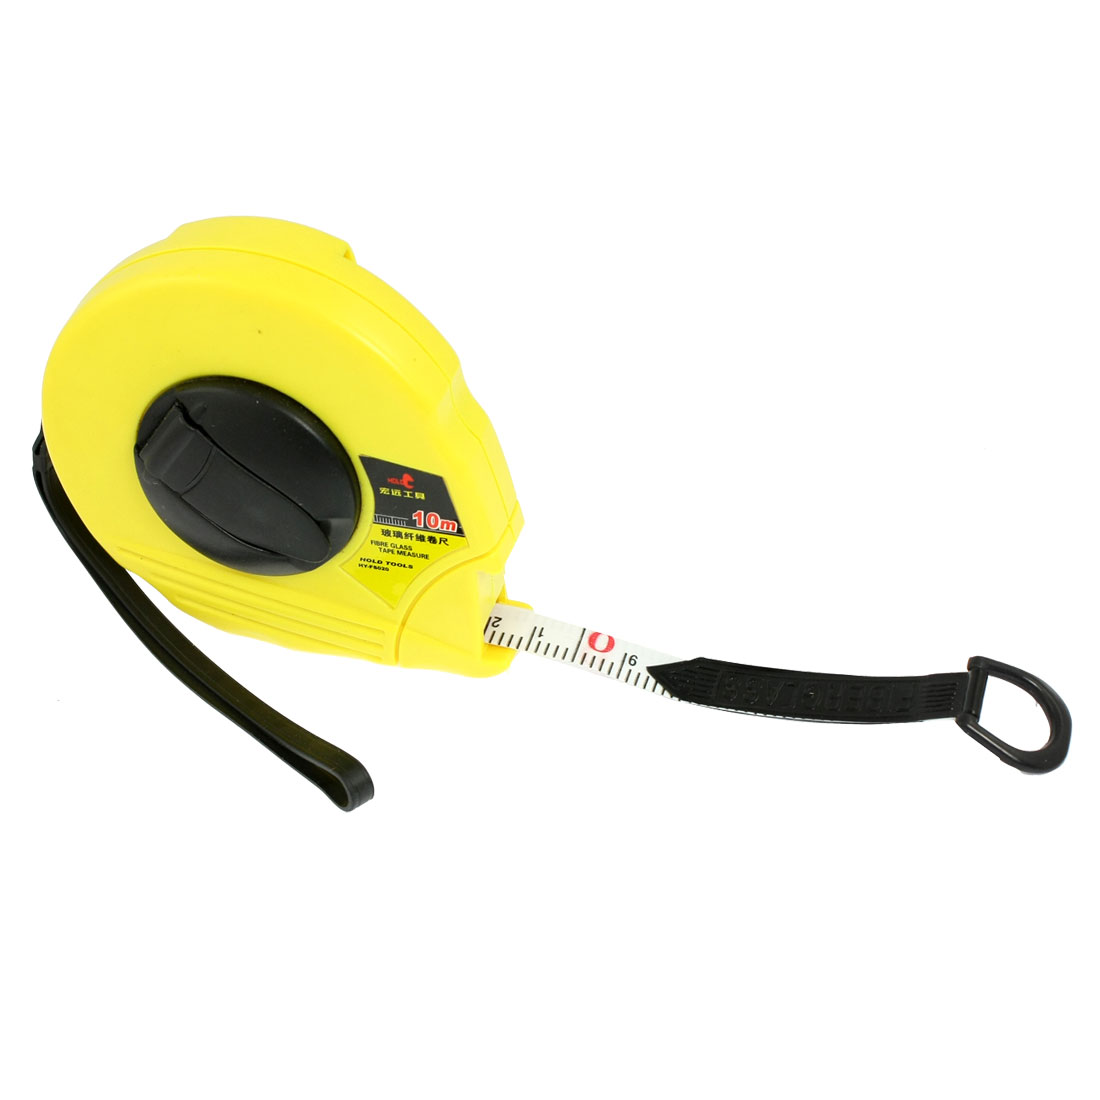 Yellow Shell Metric Retractable Ruler Fiberglass Tape Measure 10M x 12mm